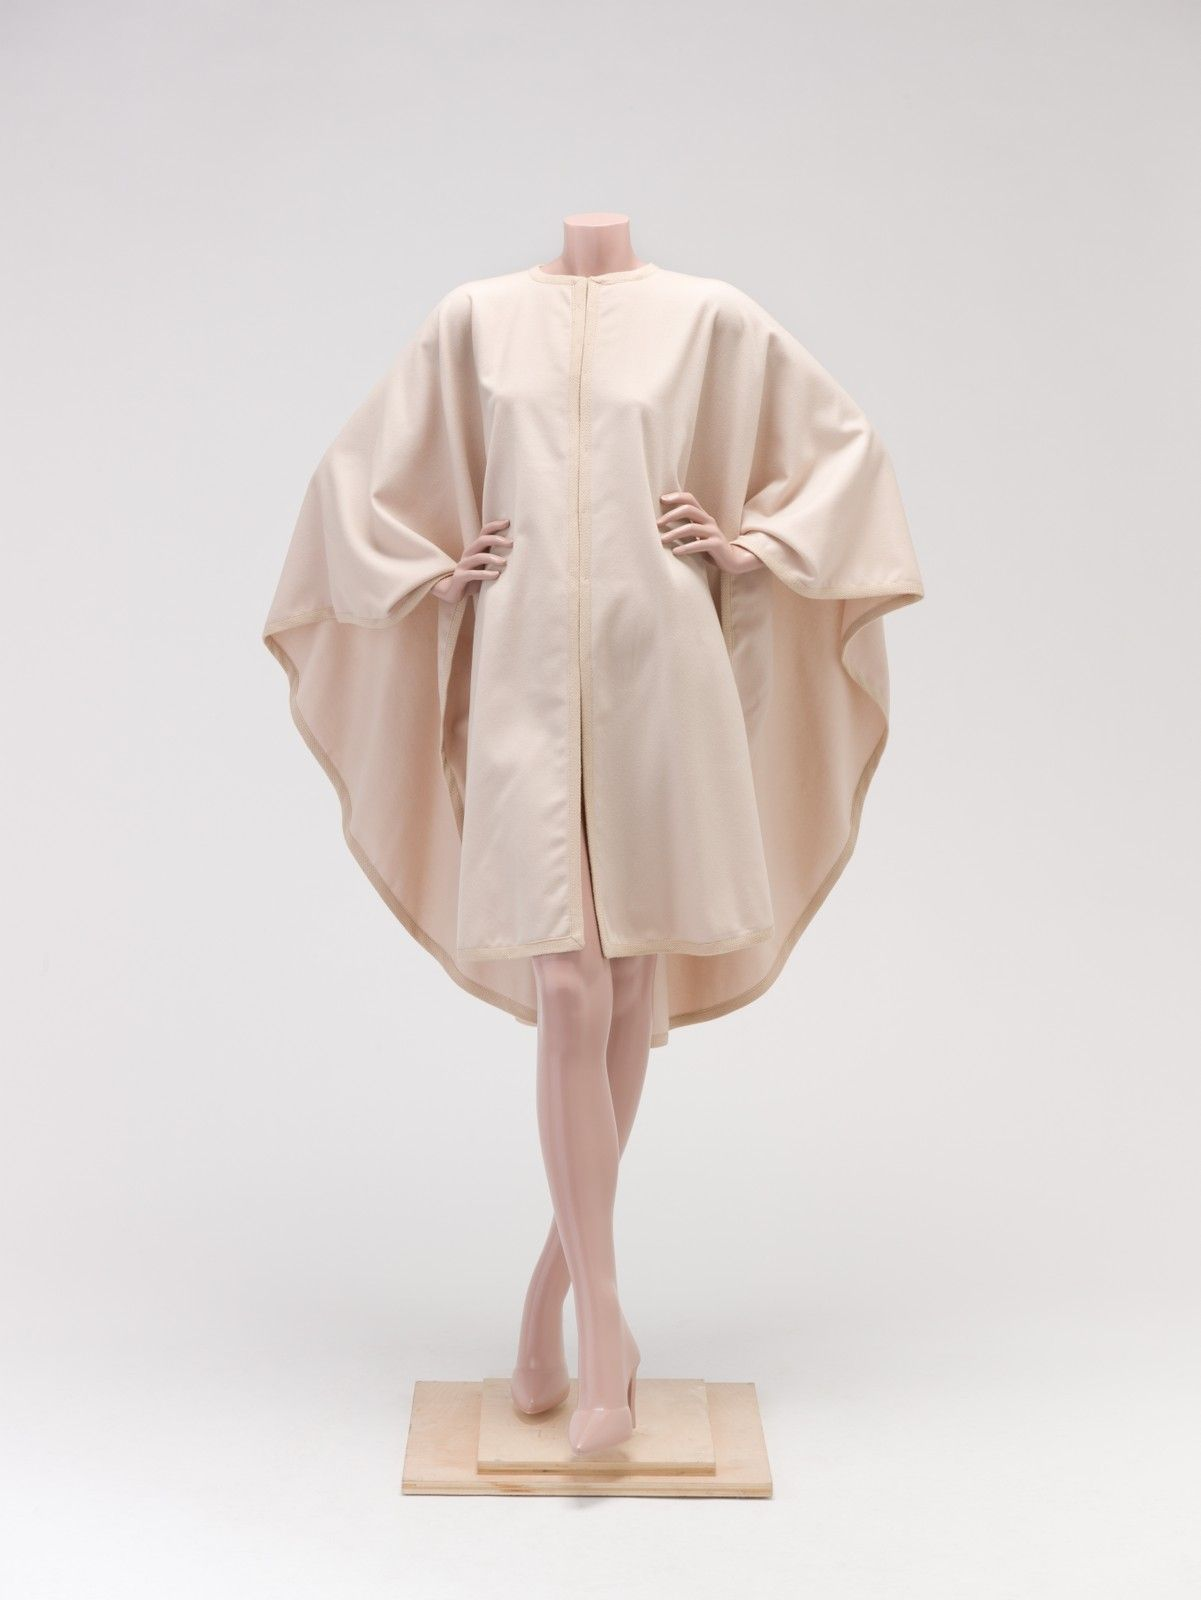 1985, France - Wool cape by Yves Saint Laurent